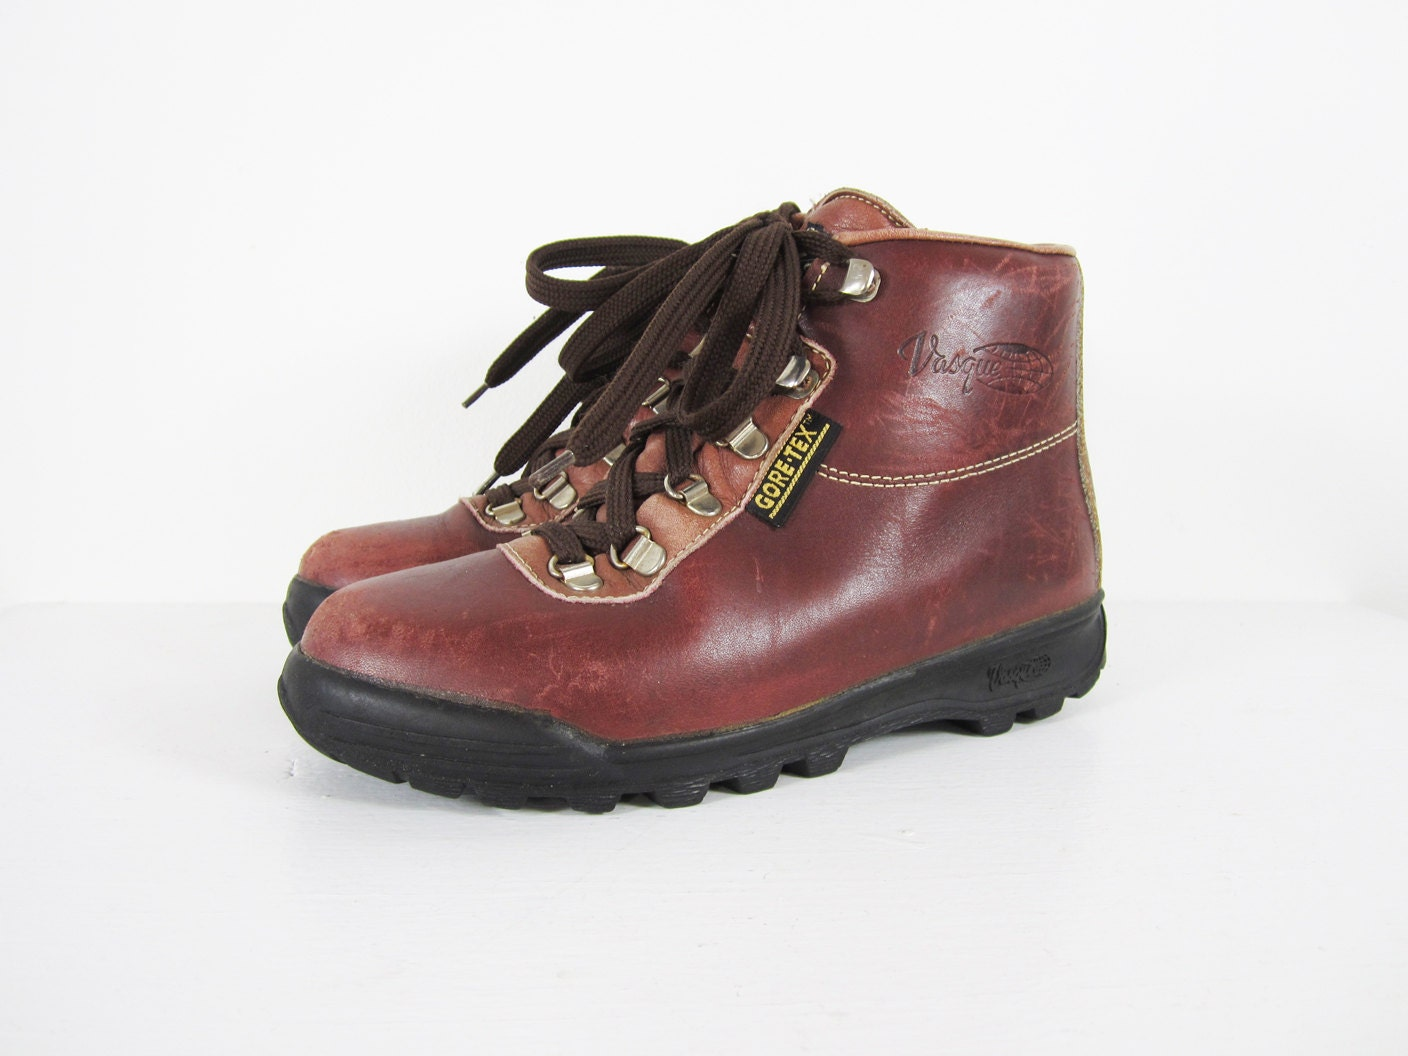 vintage vasque hiking boots mountaineering by memoryvintage